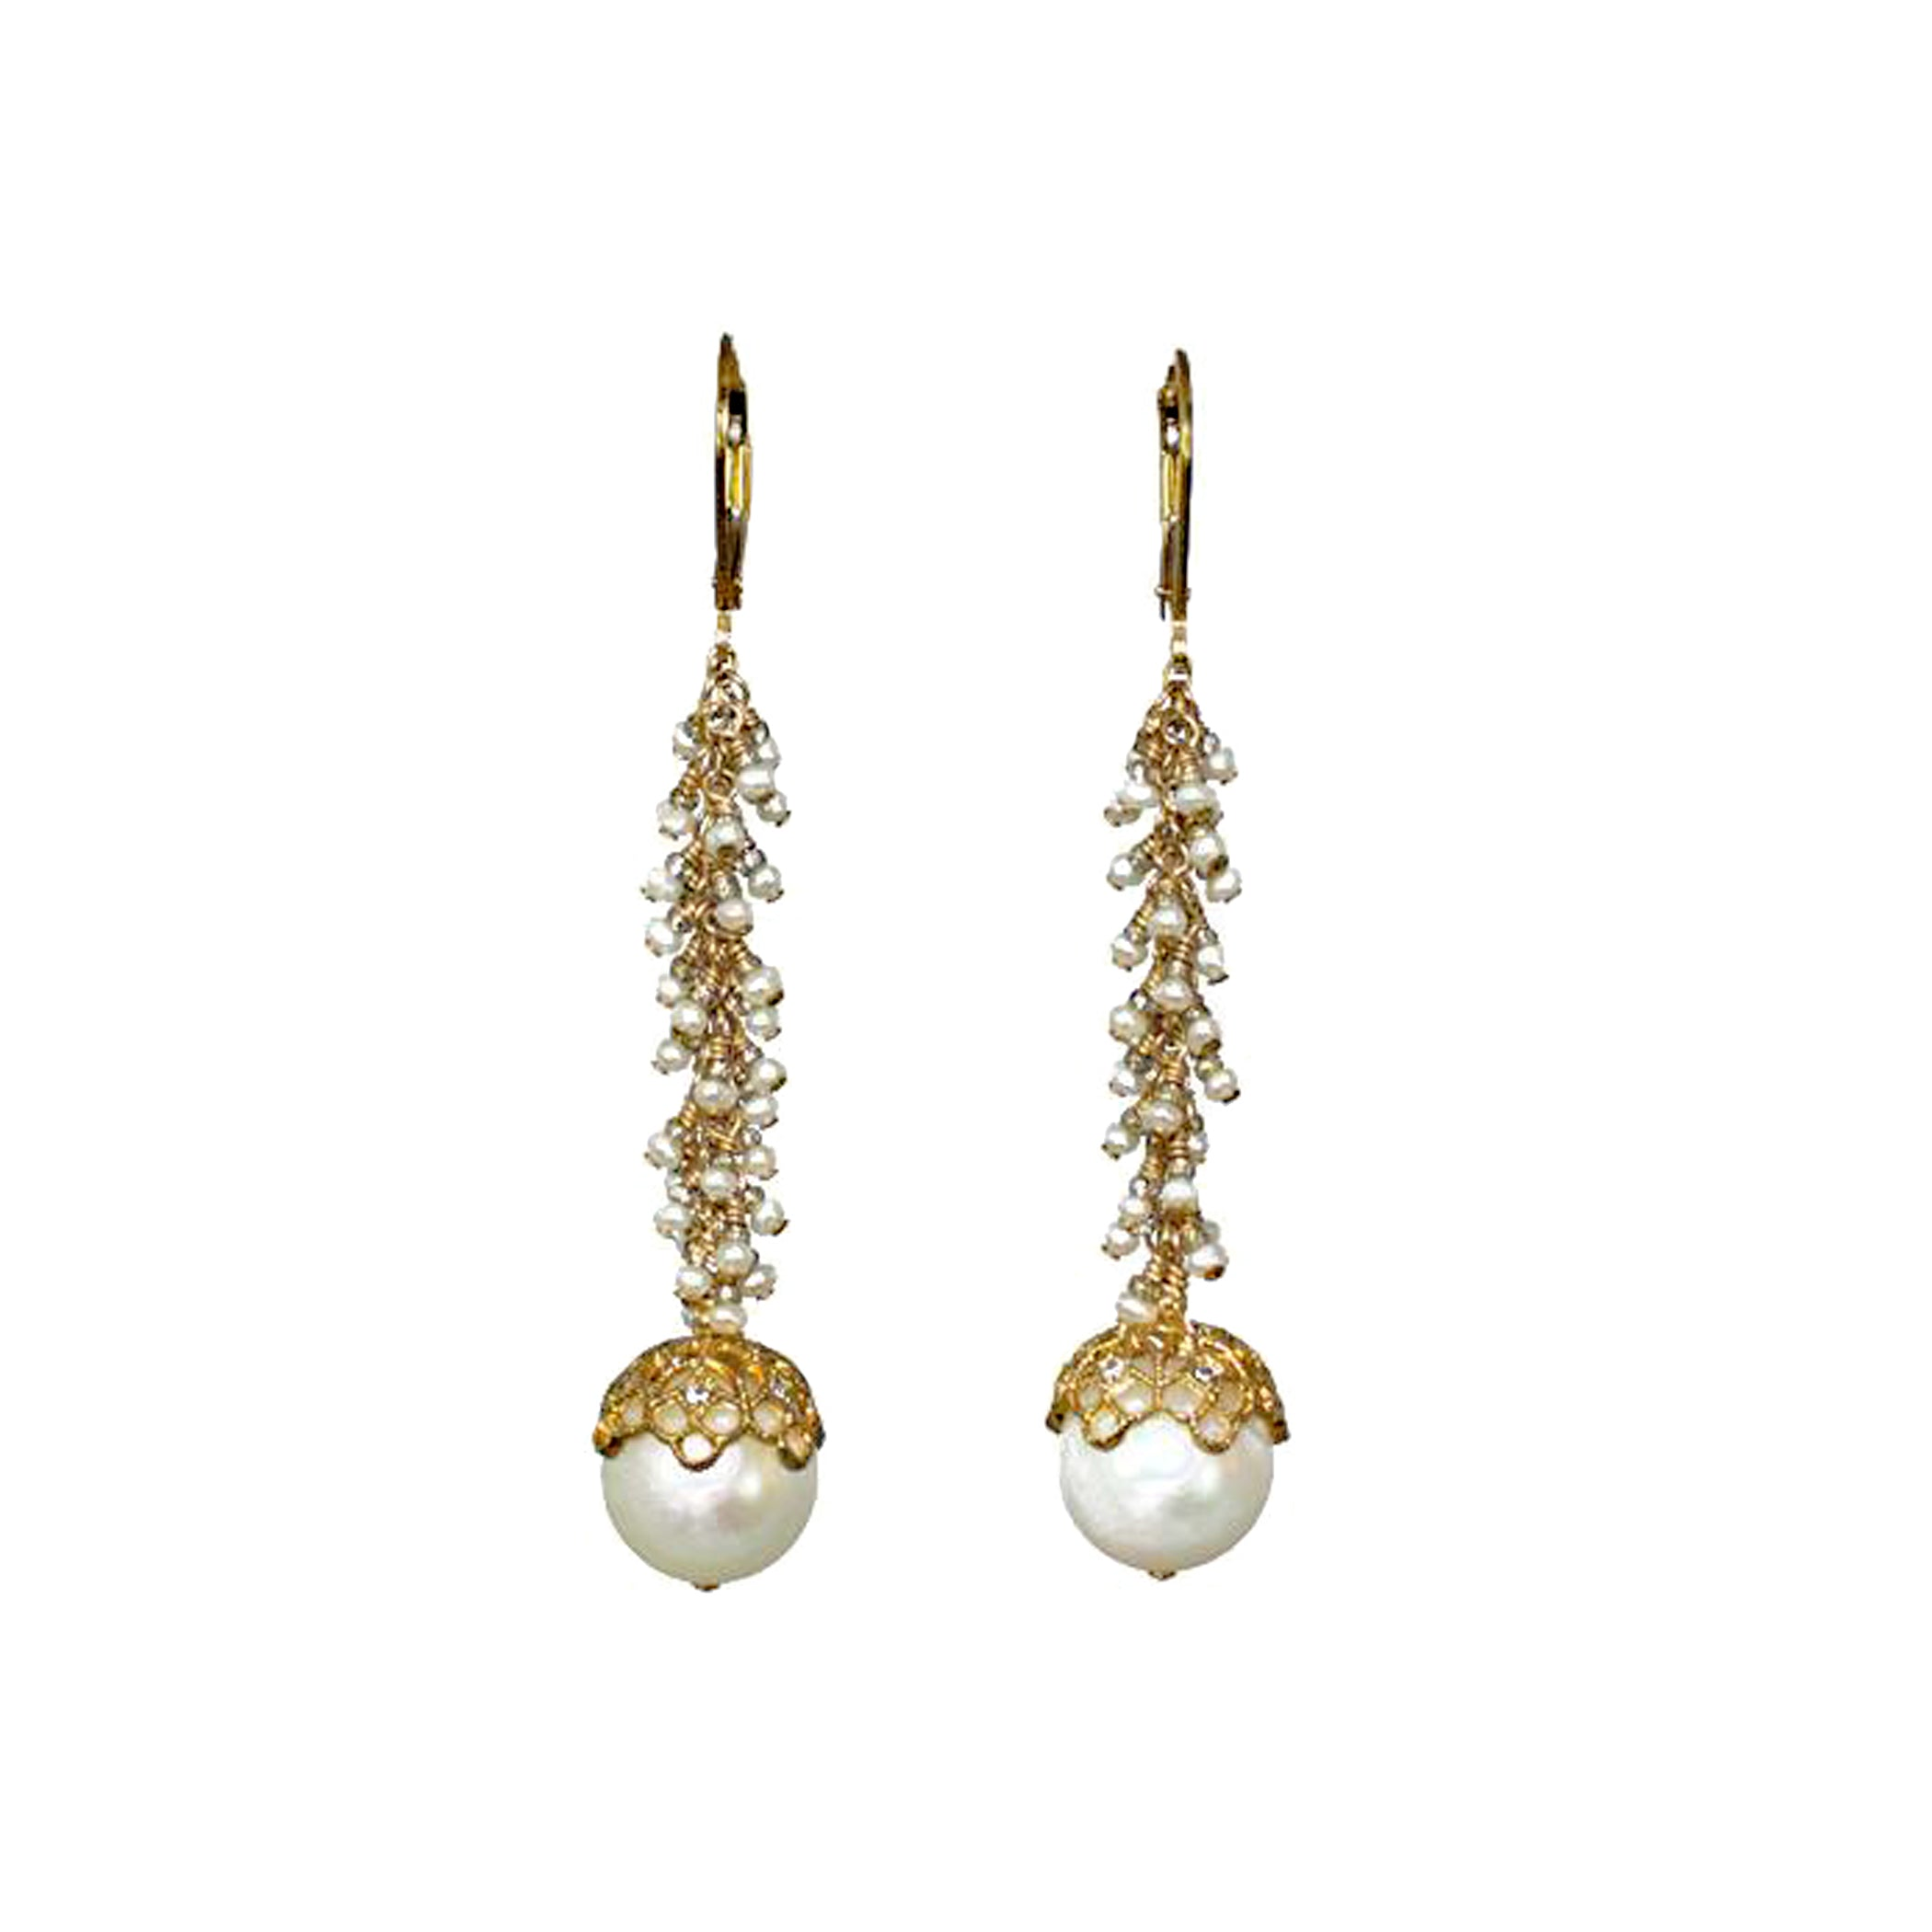 Crown 11mm Pearl Earrings with small pearl clusters